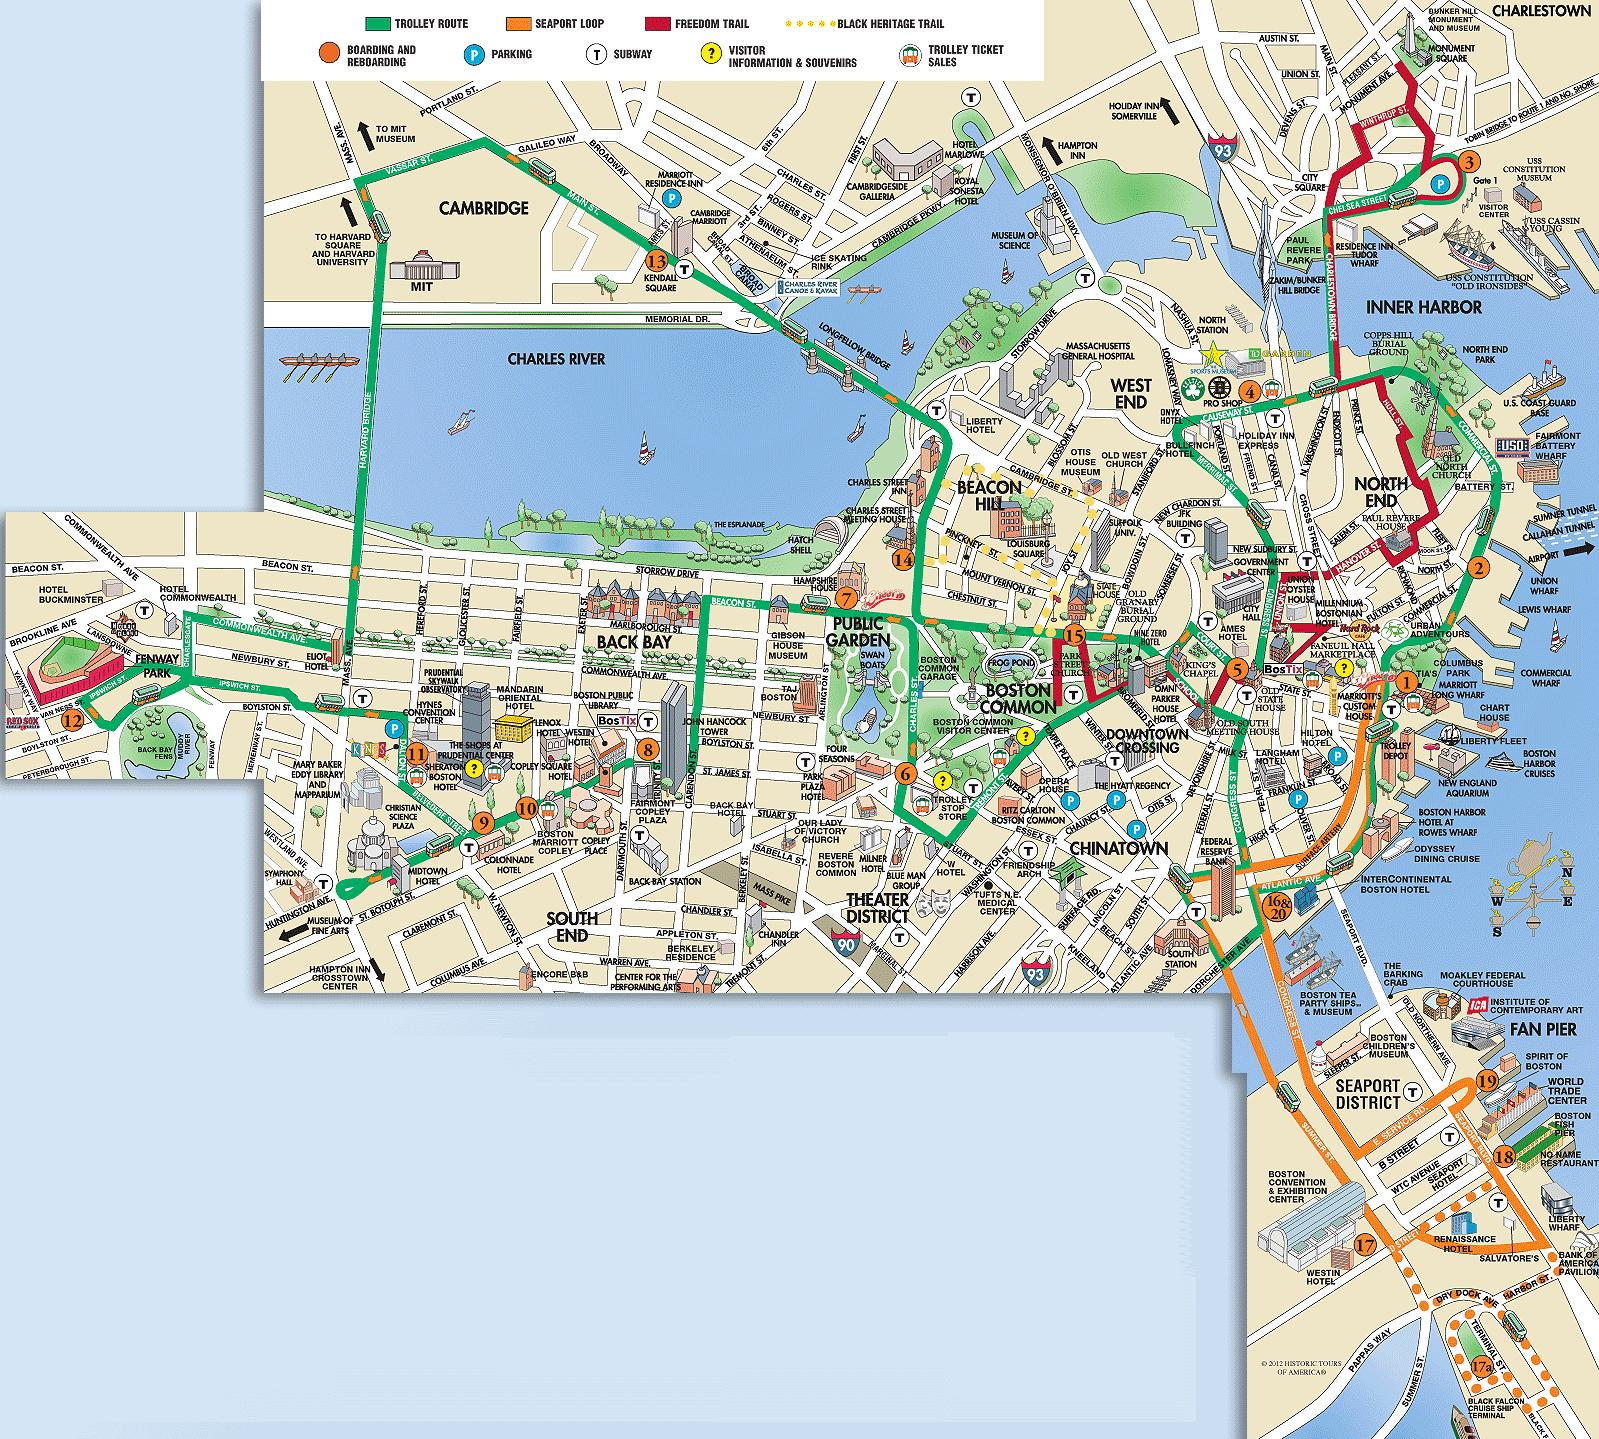 Boston Hopon Hopoff Trolley Tour in Boston USA Lonely Planet – Boston Map Tourist